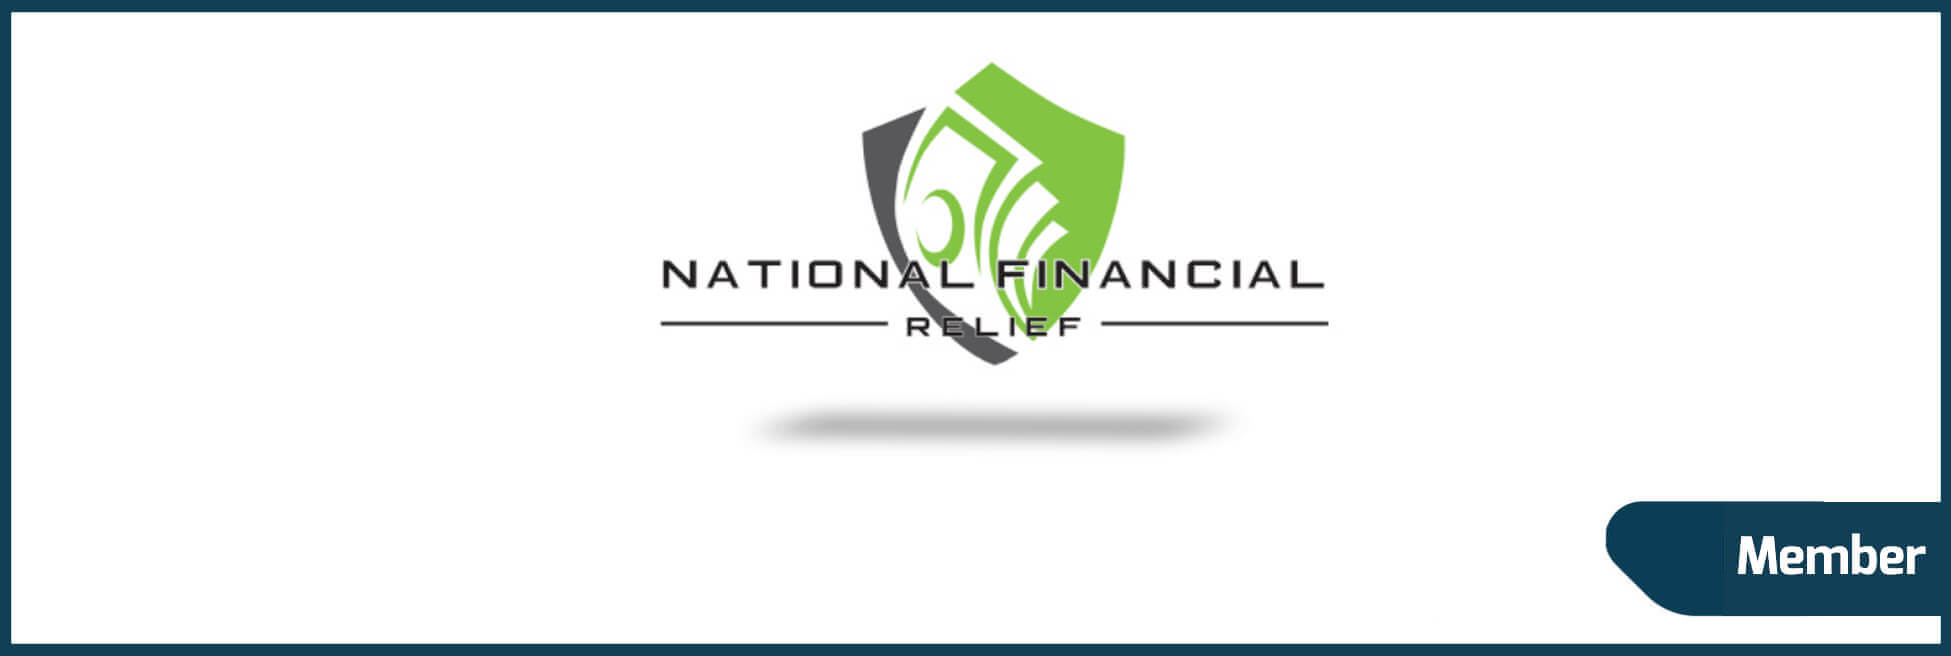 National Financial Relief